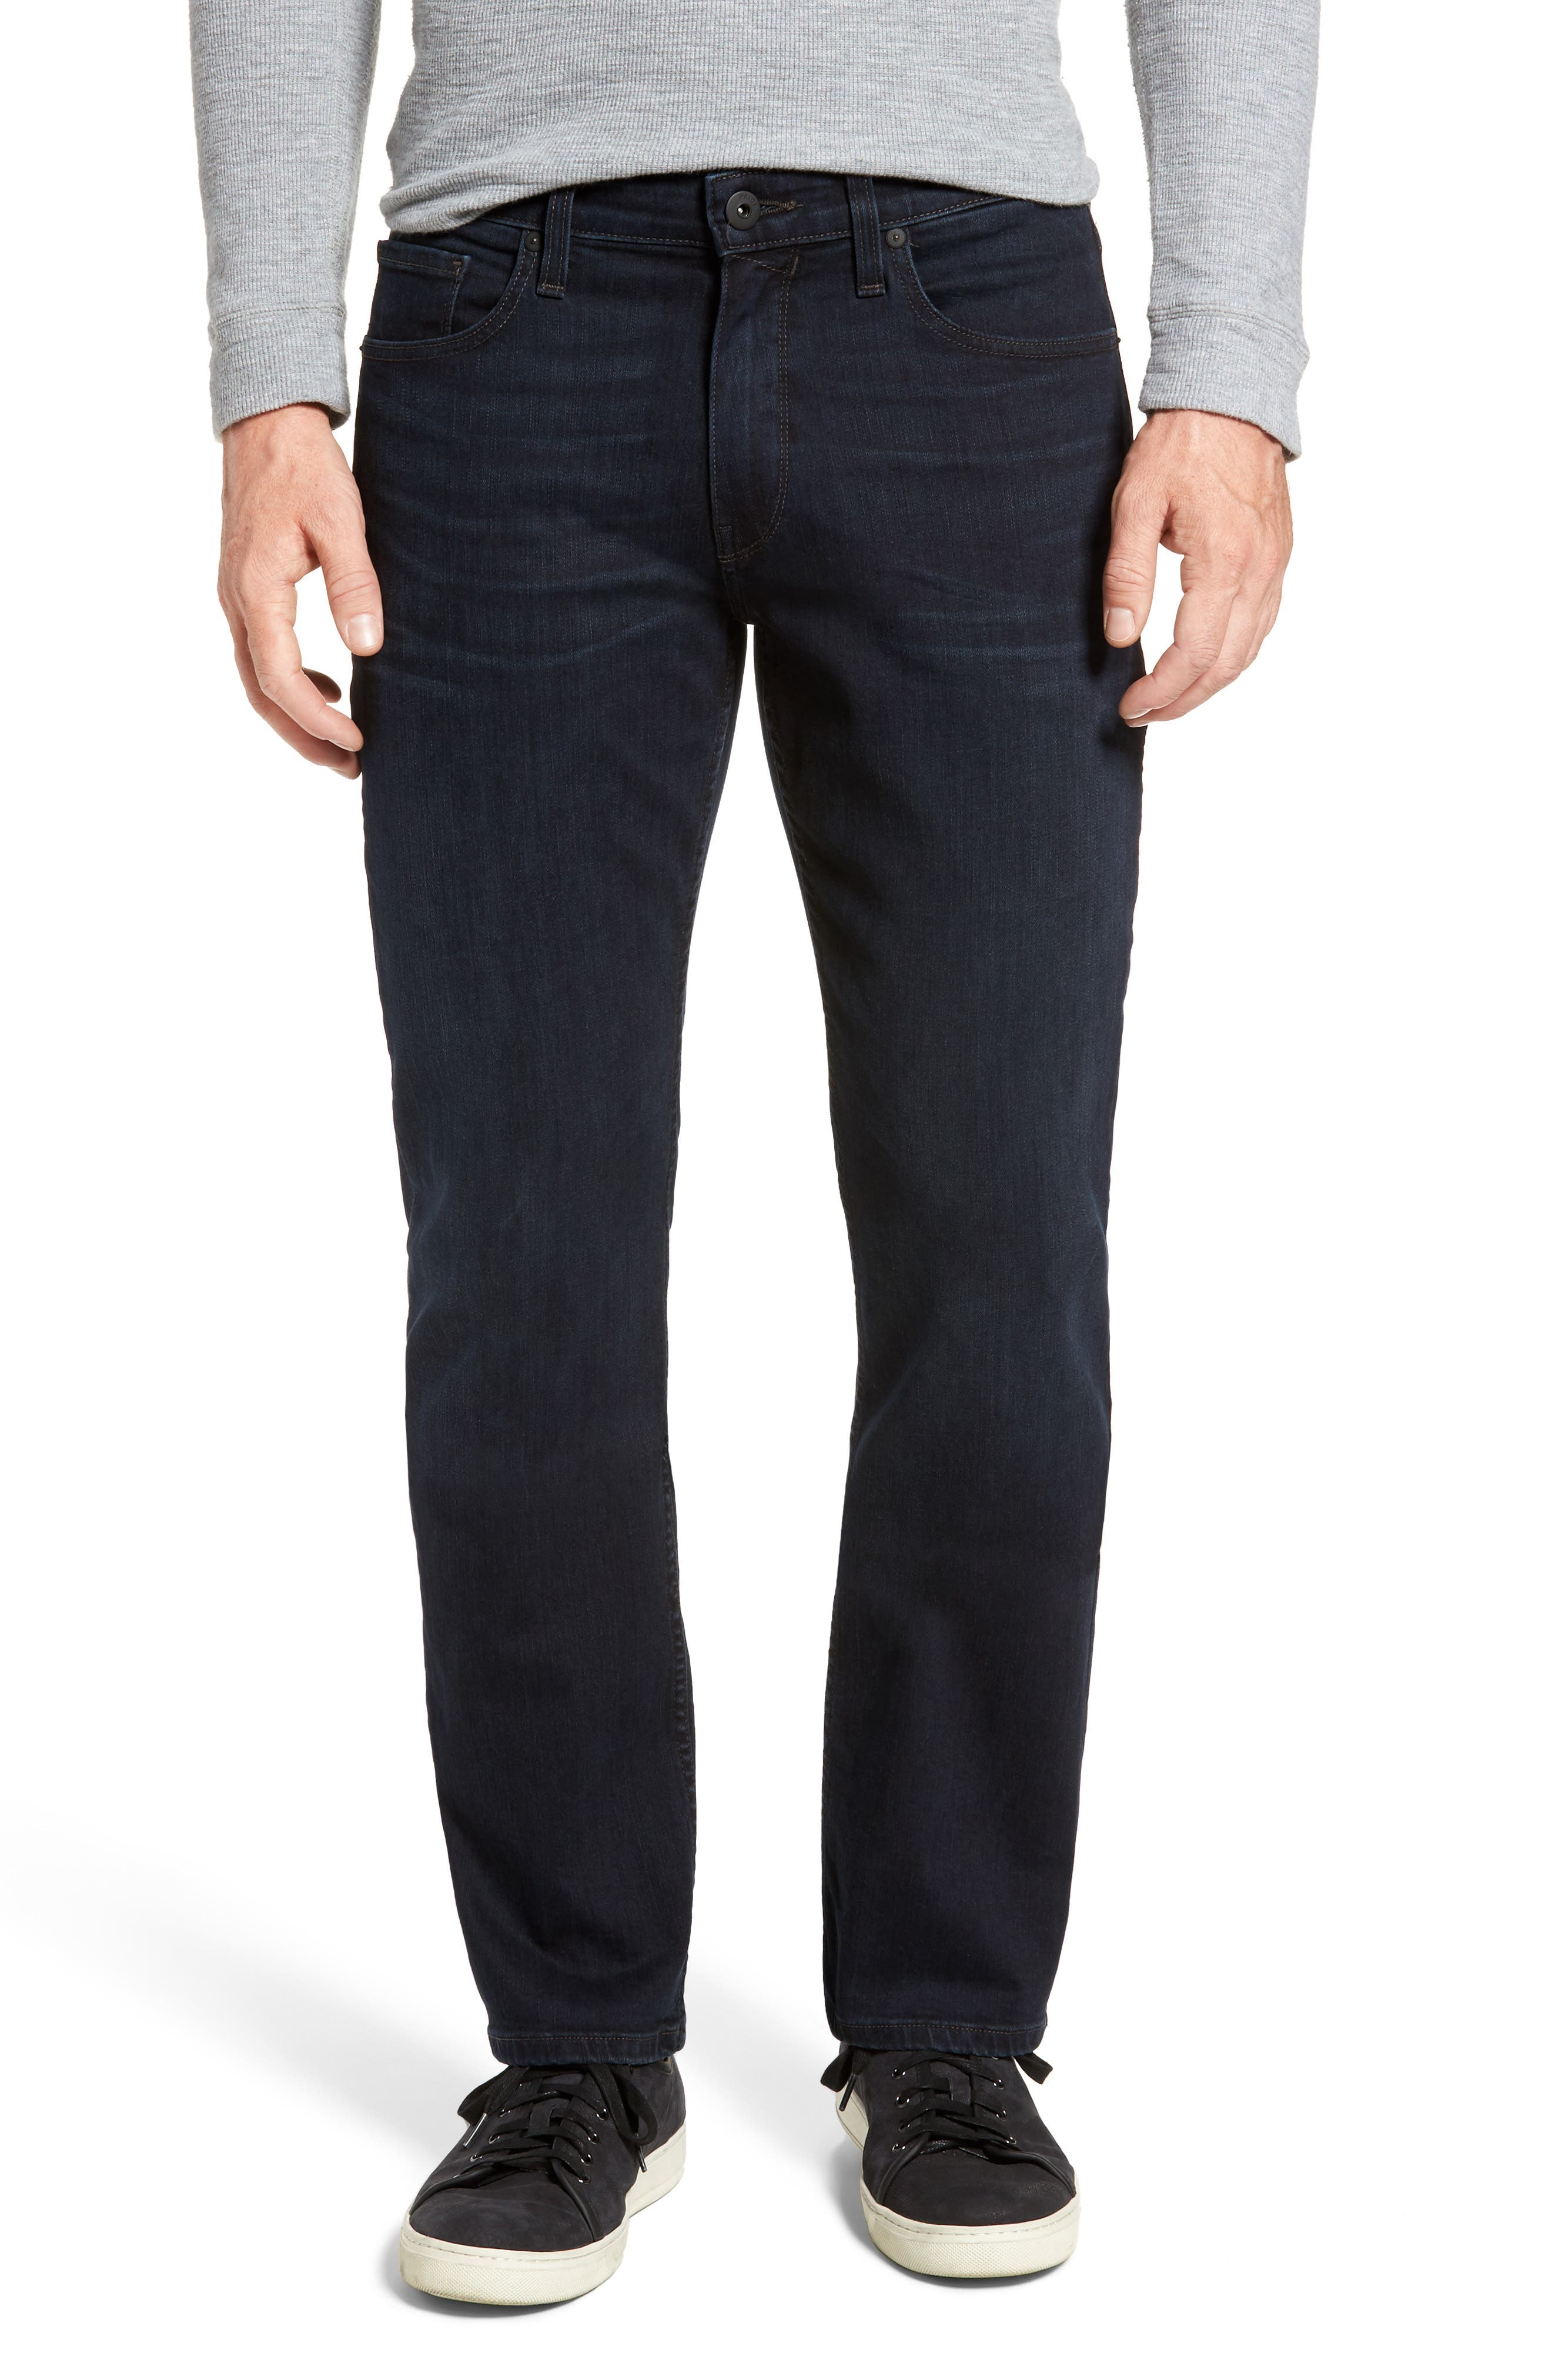 Doheny Relaxed Straight Leg Jeans,                         Main,                         color, 400